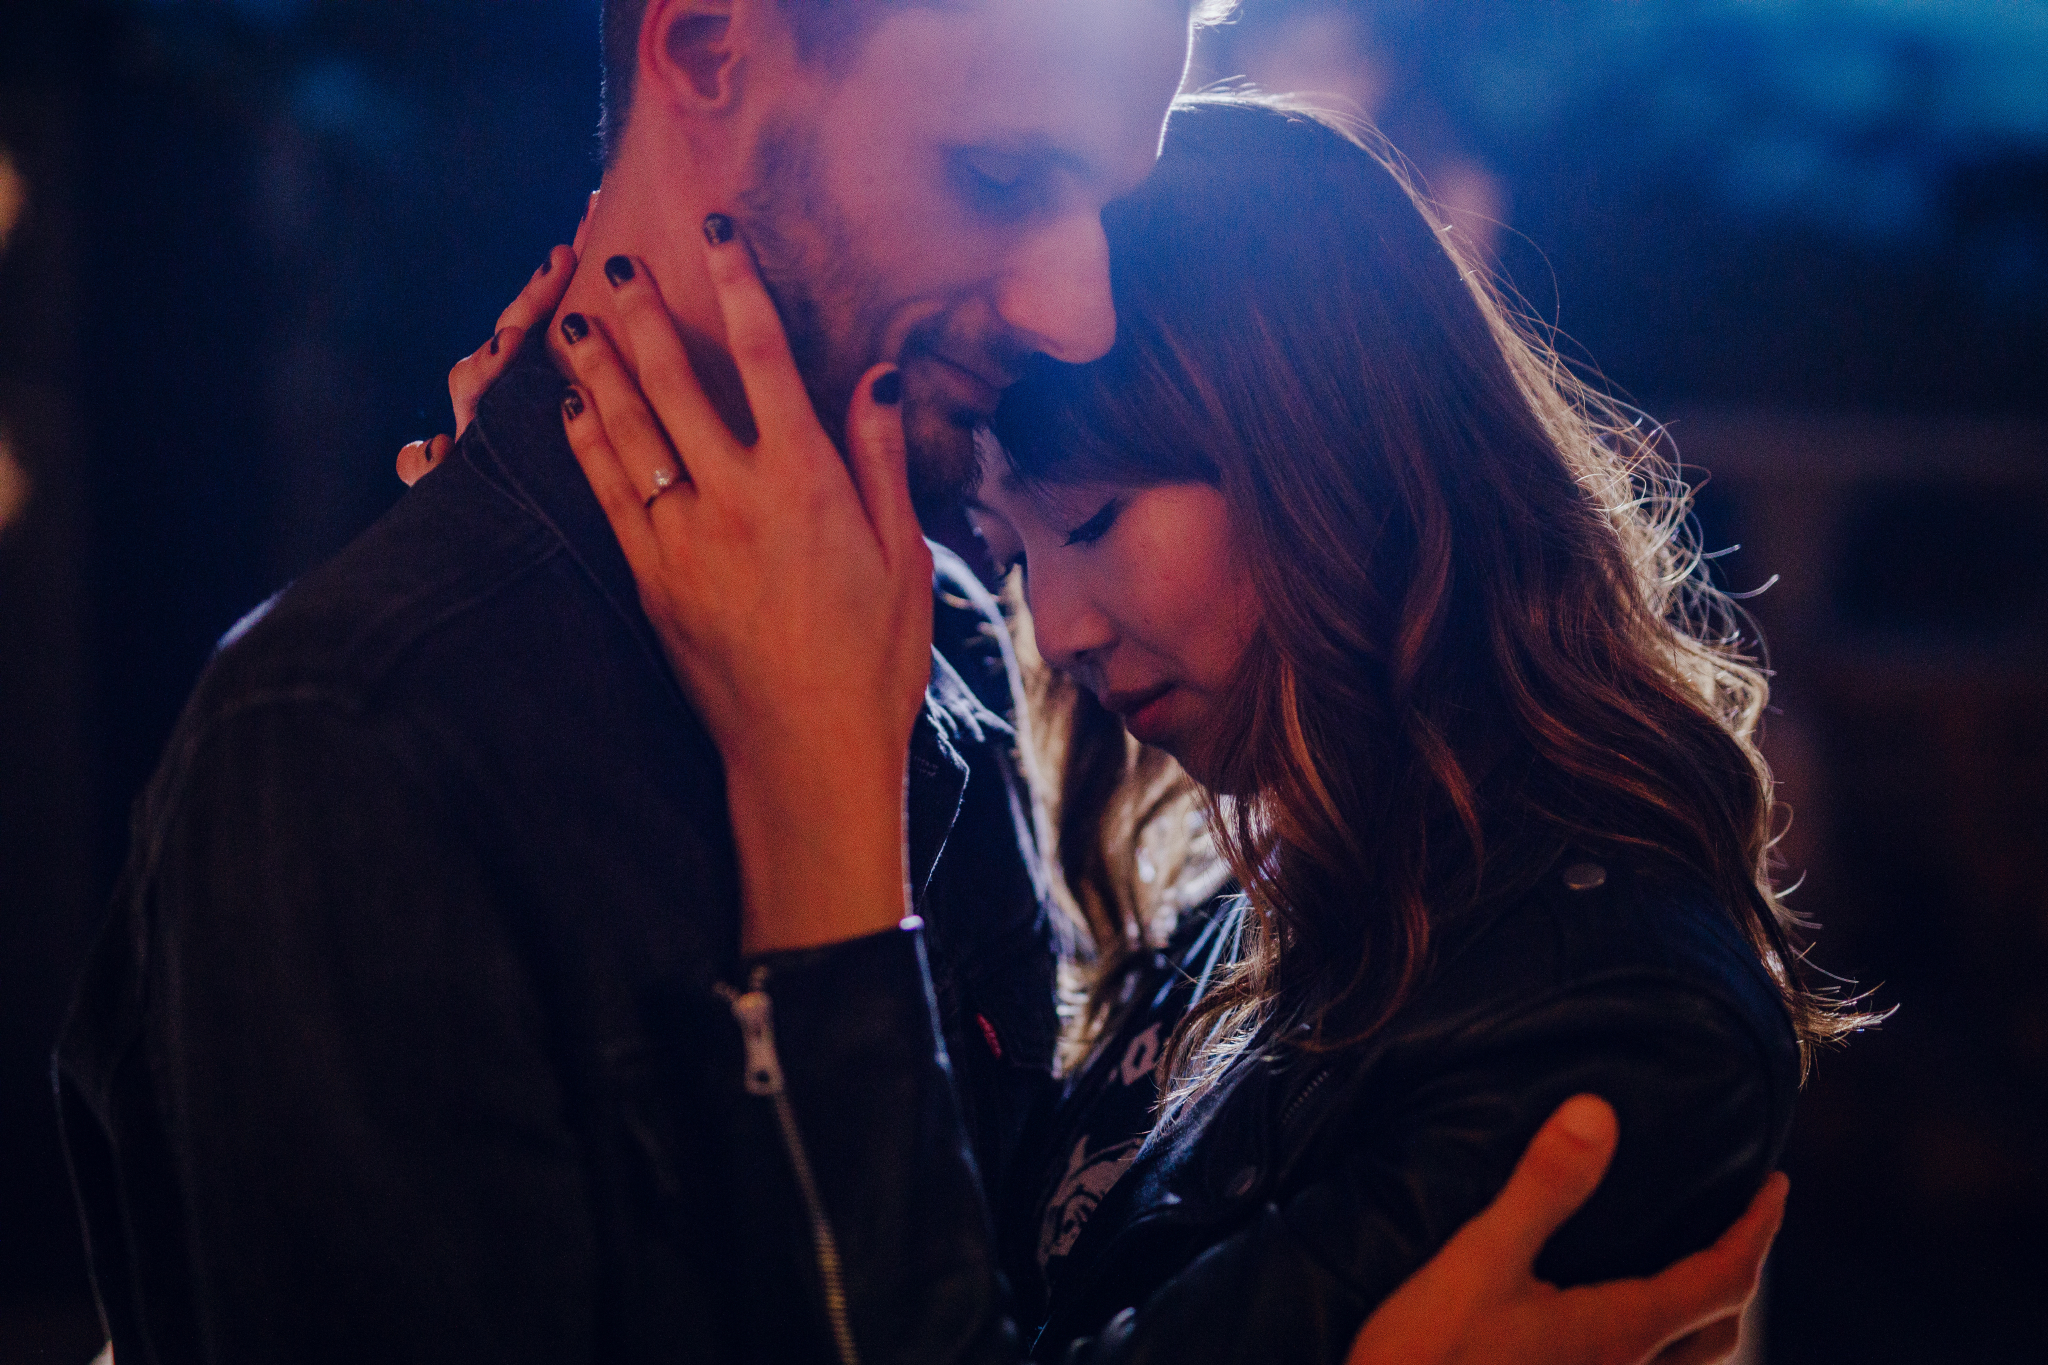 san diego wedding   photographer | couple holding each other while woman hold man's face   illuminated by light behind them